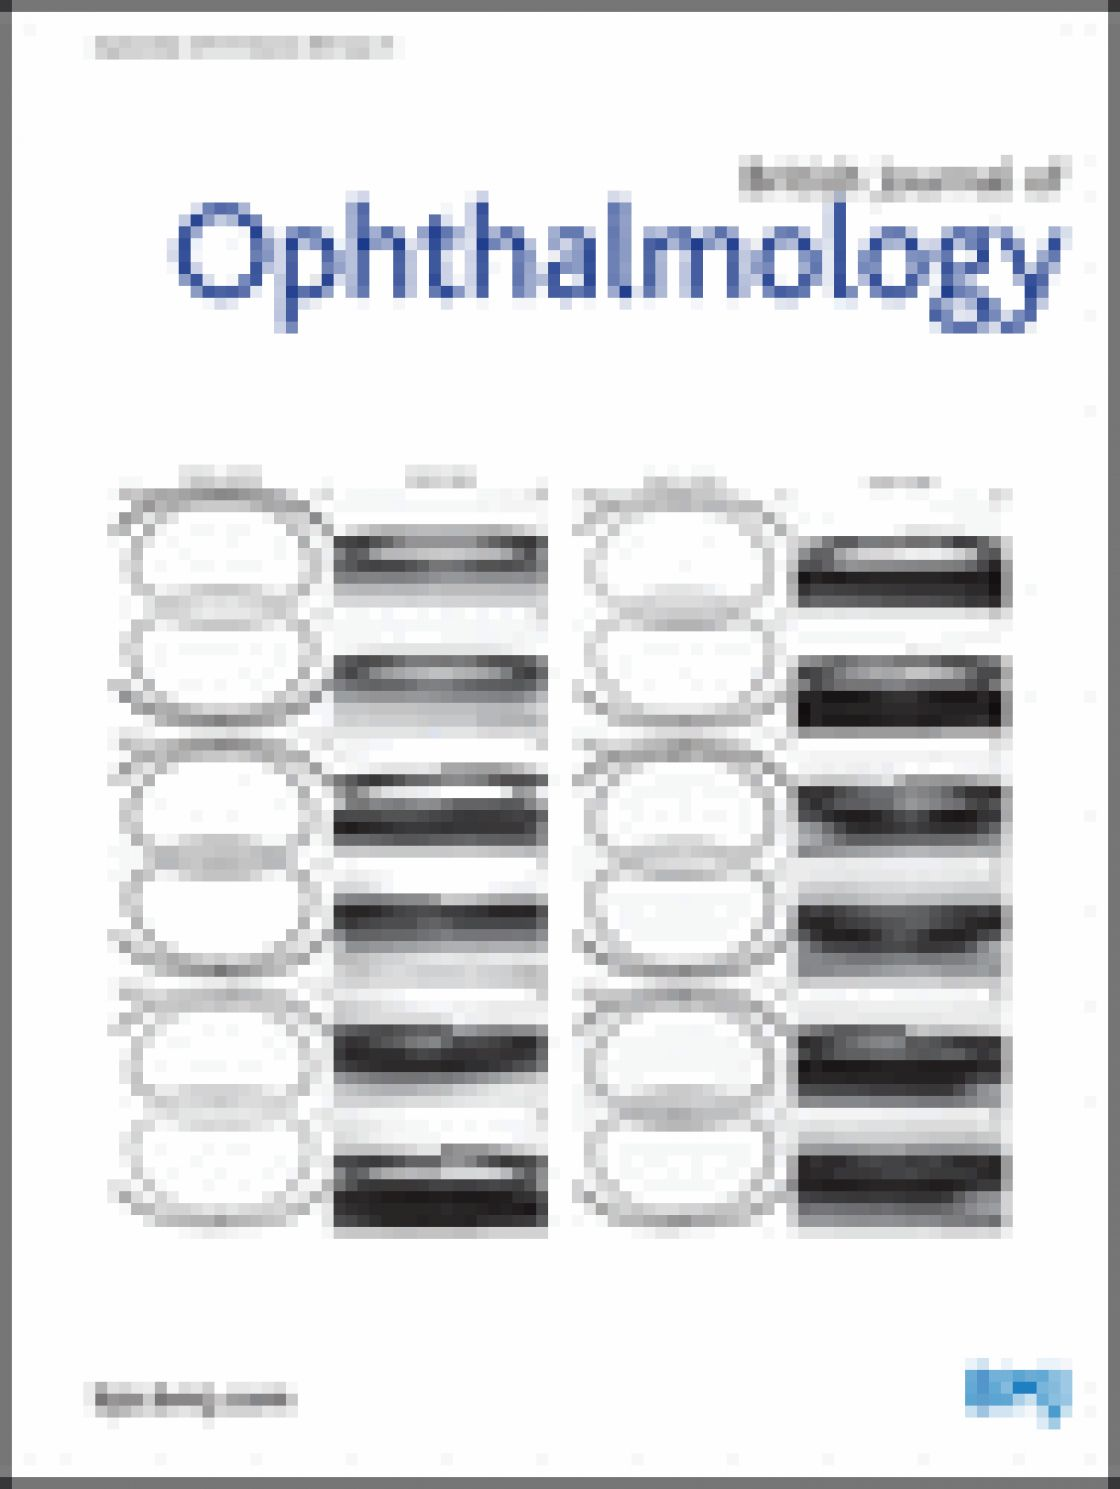 Evaluation of a new optical biometry device for measurement of ocular components and its comparison with IOLMaster